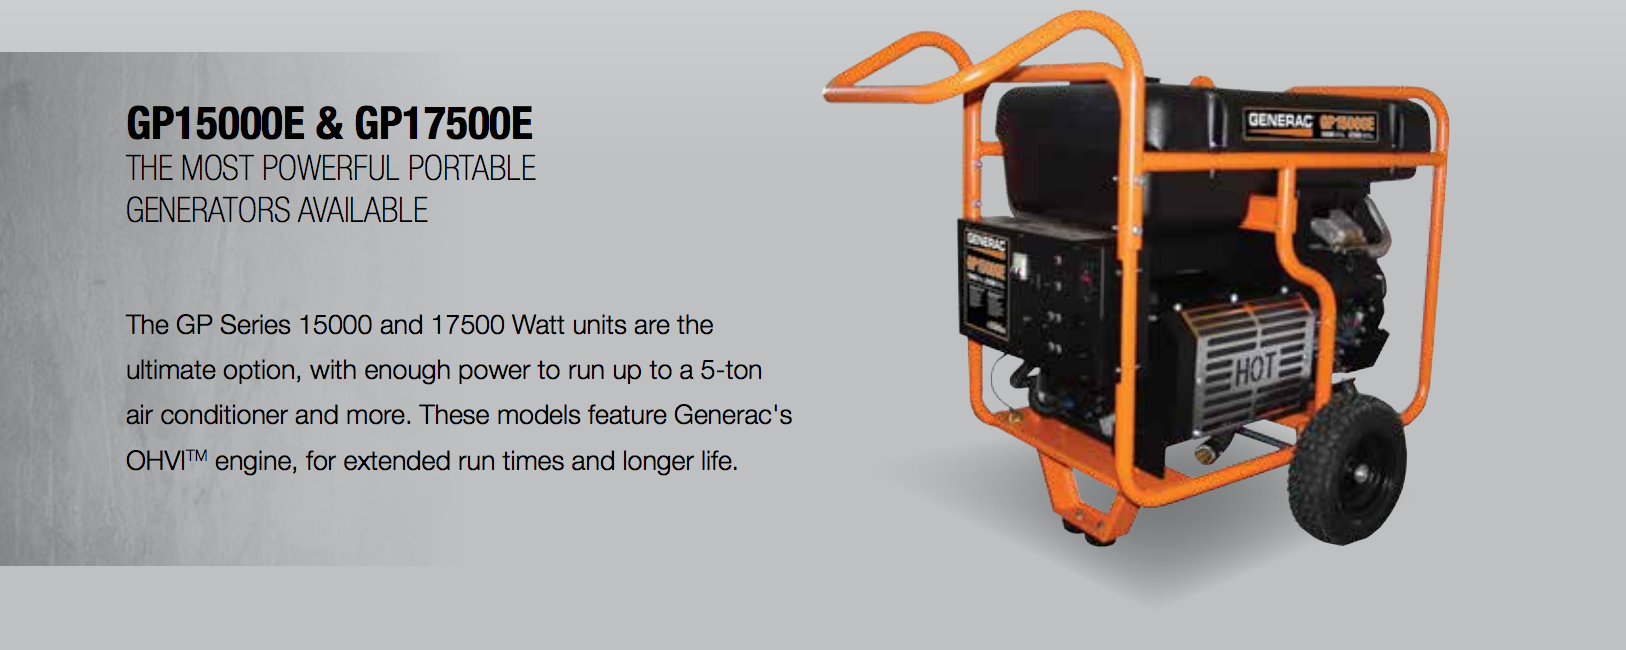 Generac 5734 Gp15000e Portable Generator Free Shipping Us 15000 Wiring Diagram While A Sturdy Steel Tube Cradle Protects The Generators Exterior For Safe And Comfortable Use Circuit Breaker Outlets Prevent Power Overloads